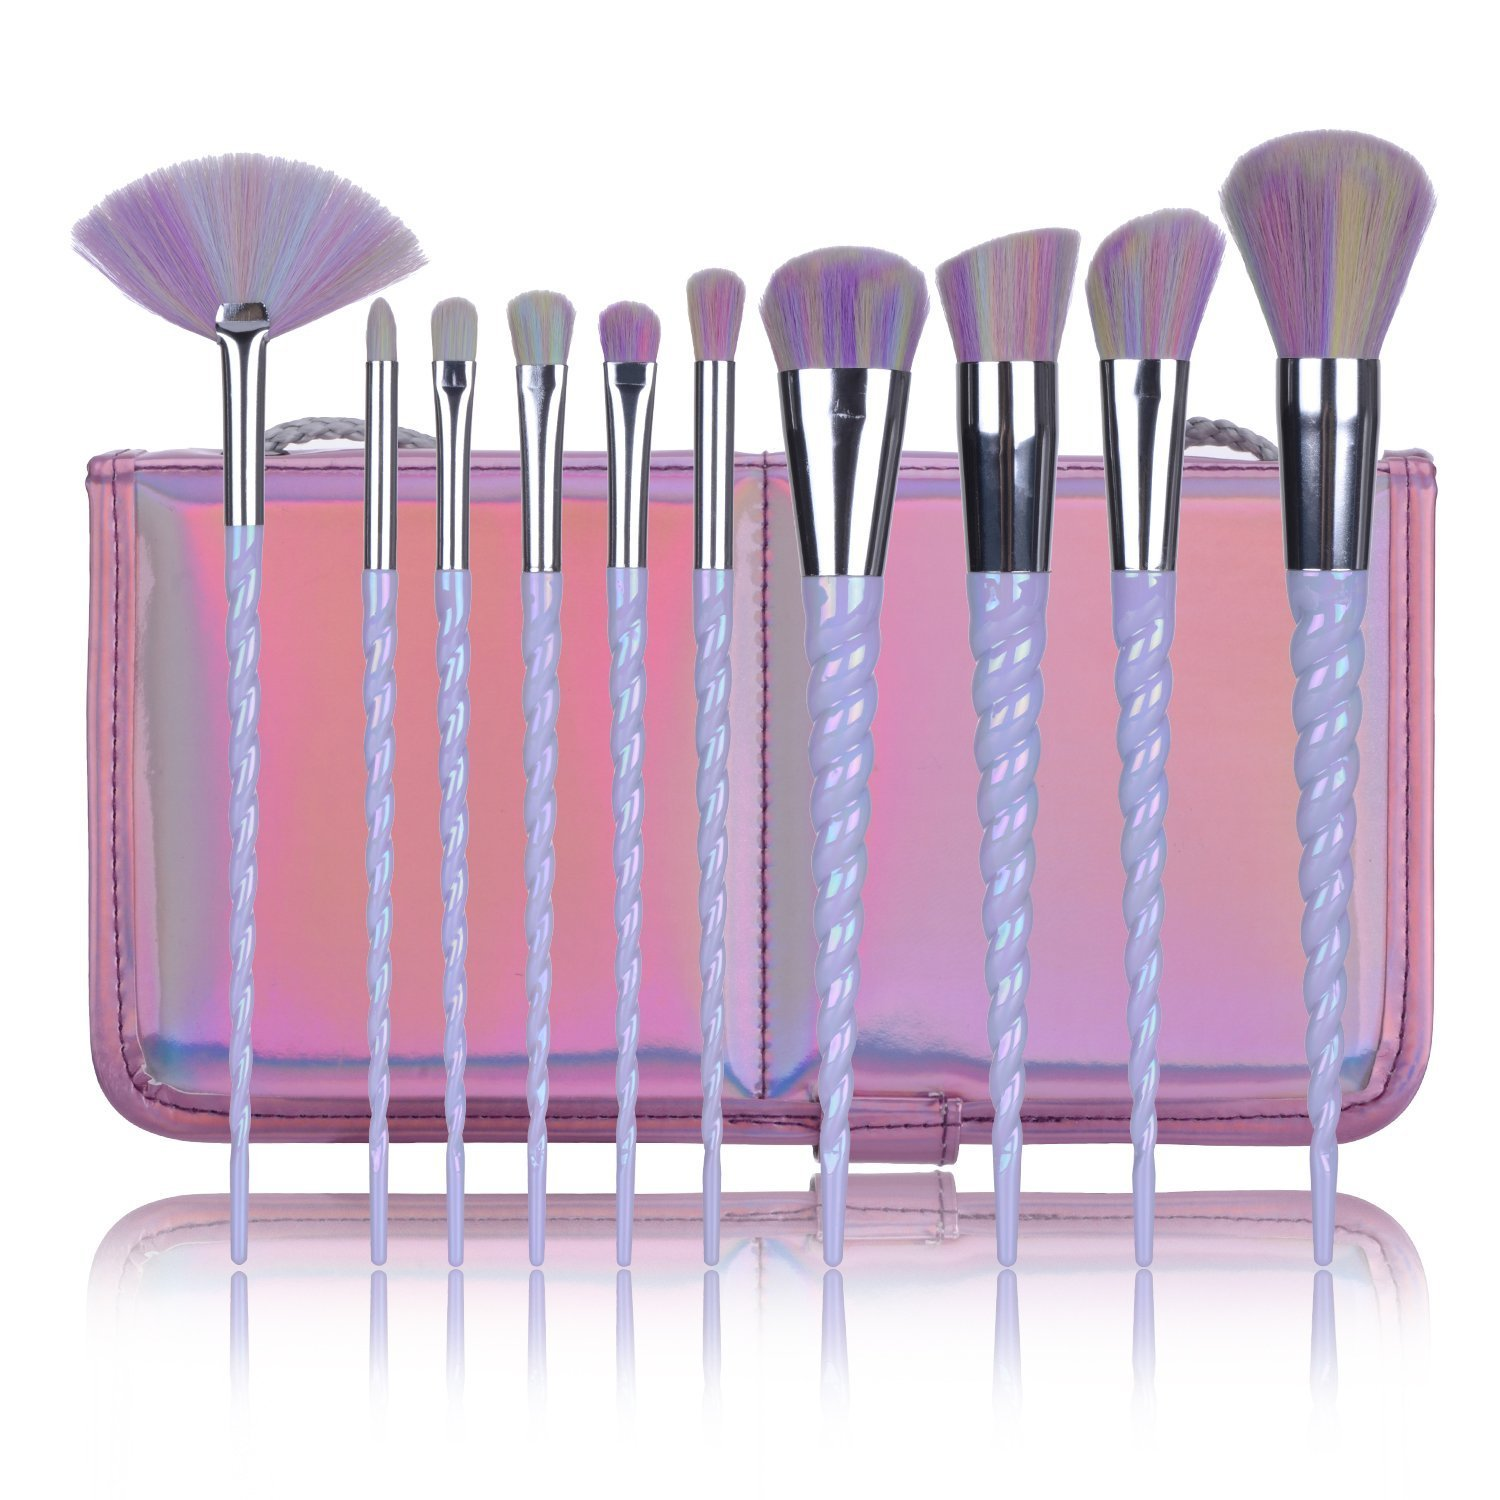 BYBOO 10Pcs Make up Brush Set Unicorn Design Rainbow Synthetic Hair Foundation Eyebrow Eyeliner Eyeshadow Blusher Face Lip Beauty Brushes with Carrying Case